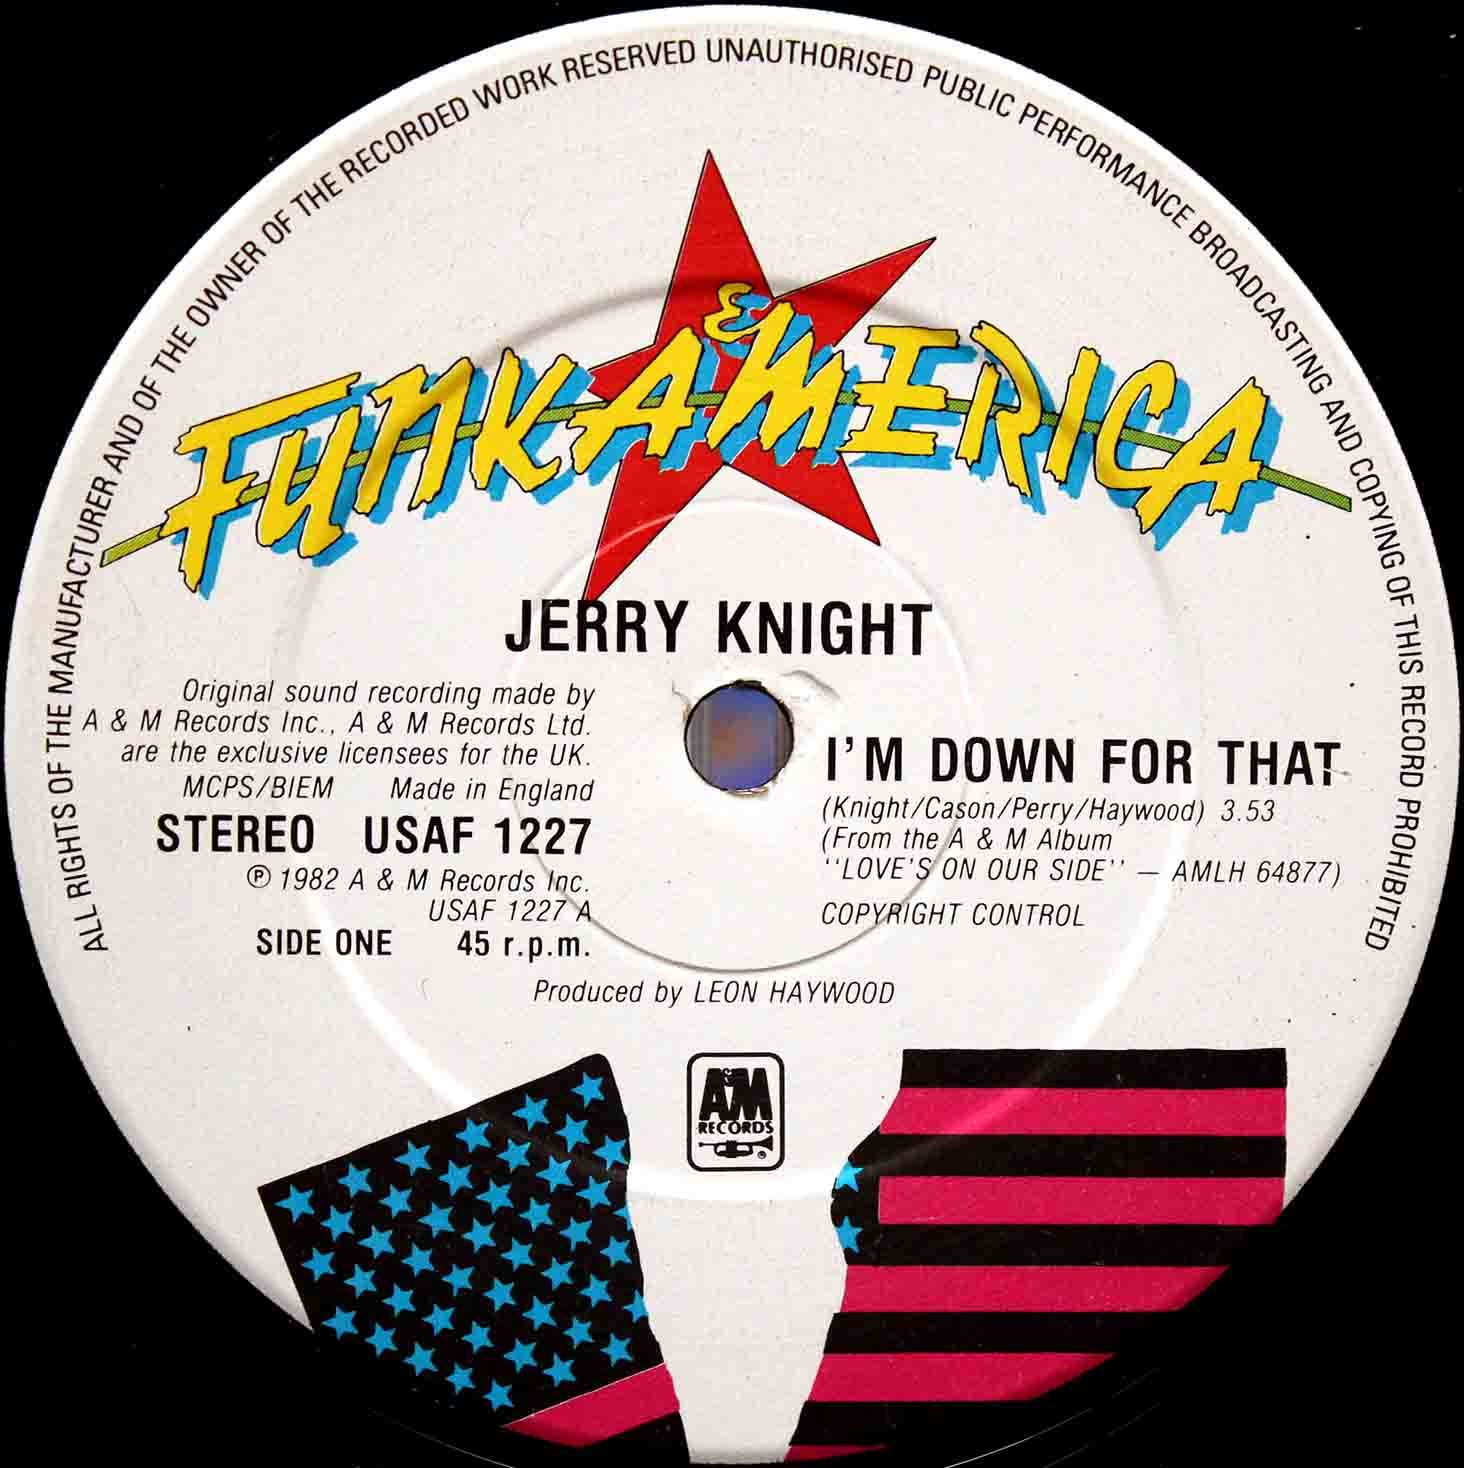 Jerry Knight Shes Got To Be (A Dancer) 04